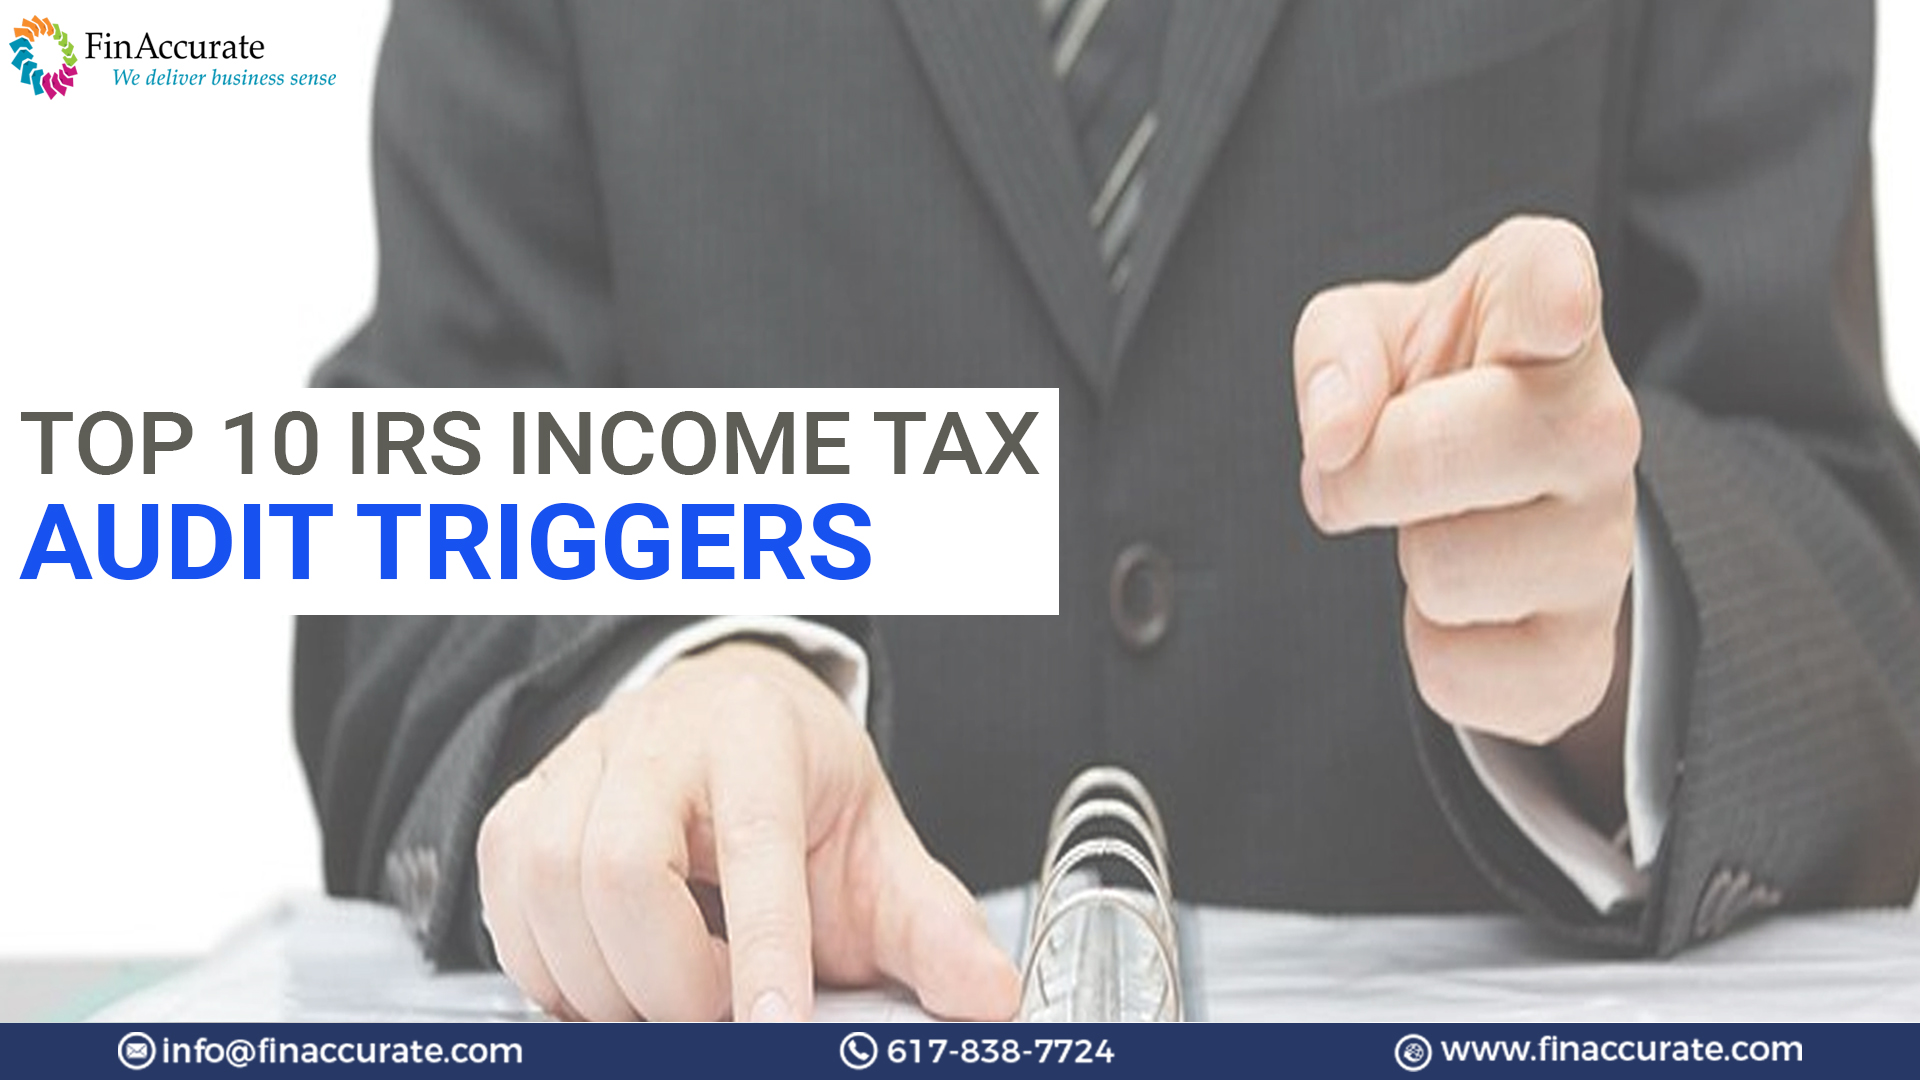 Top 10 IRS Income Tax Audit triggers